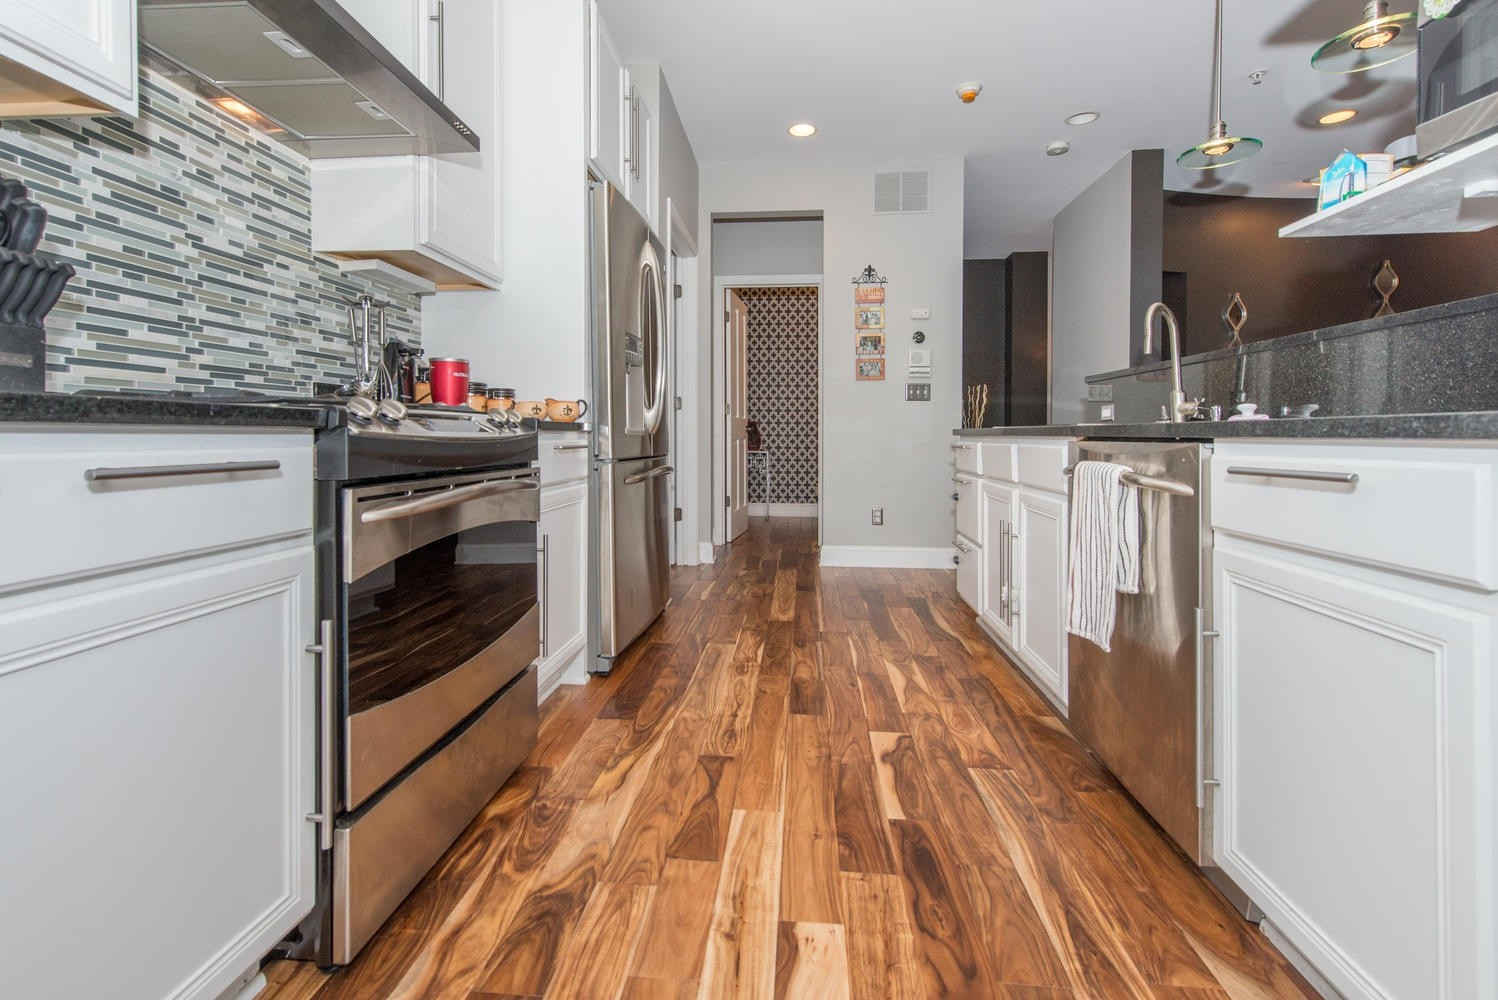 acacia engineered hardwood flooring of 9 mile creek acacia hand scraped acacia confusa wood floors within acacia handscraped natural hardwood flooring living room acacia engineered kitchen acacia engineered